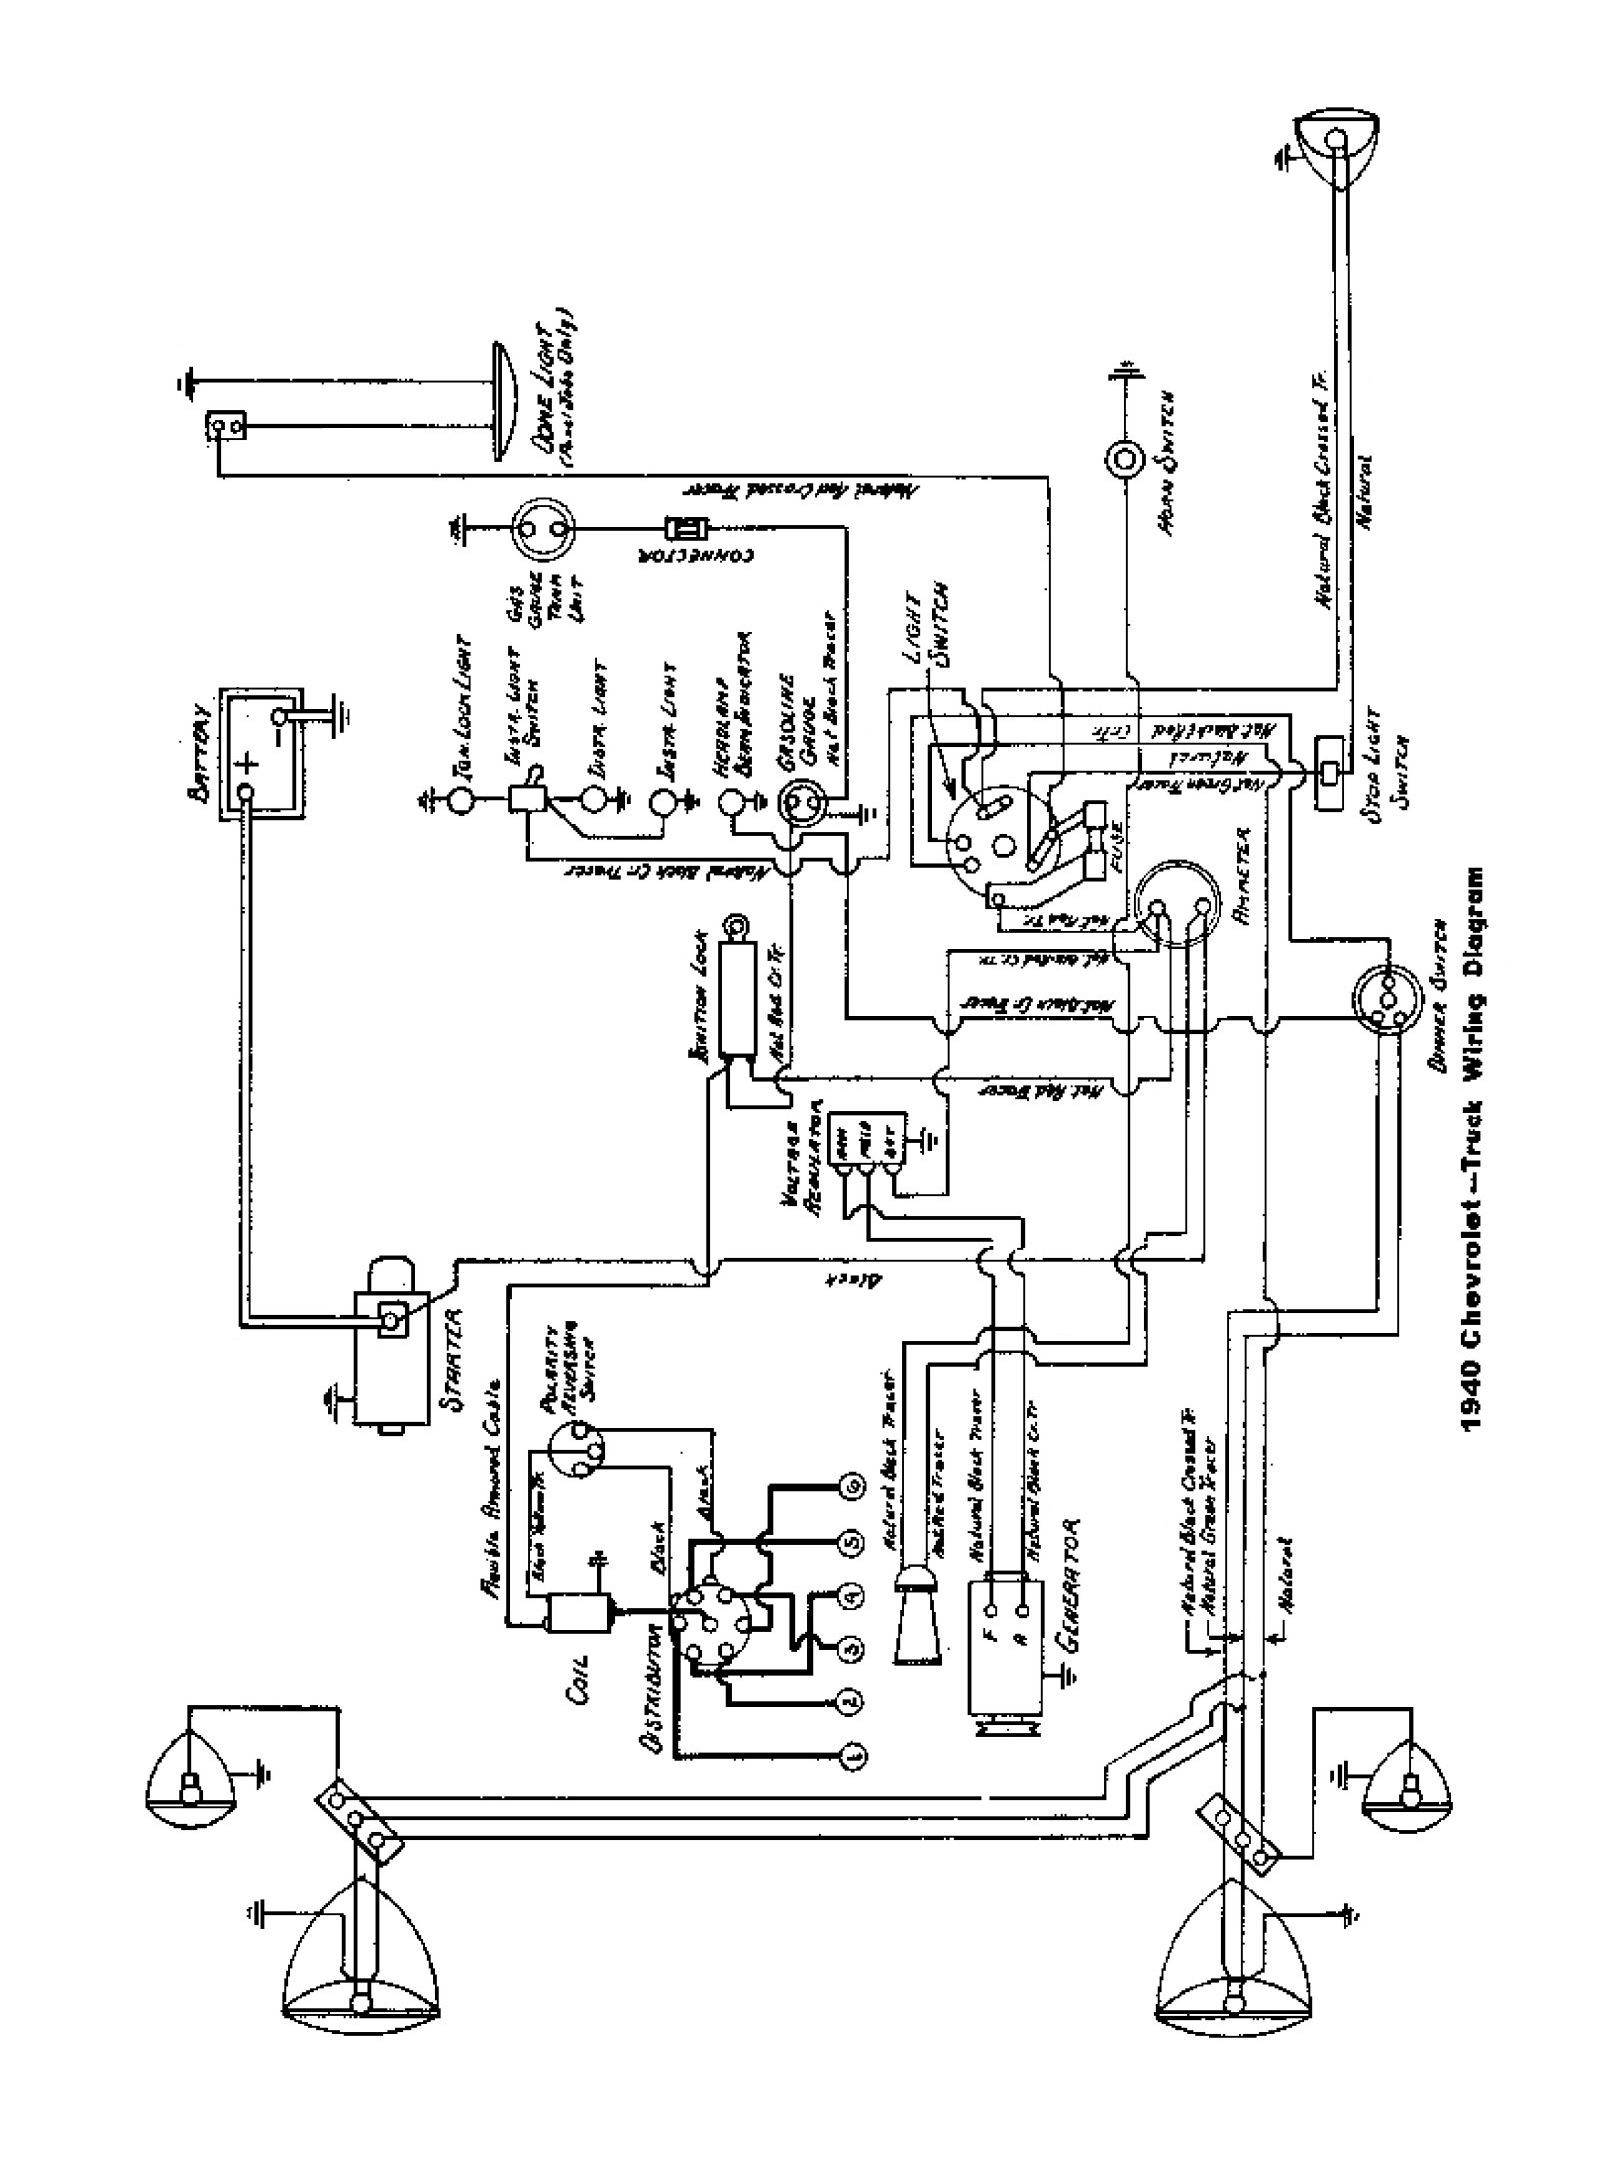 Wiring Diagram For Chrysler Windsor Wiring Diagram